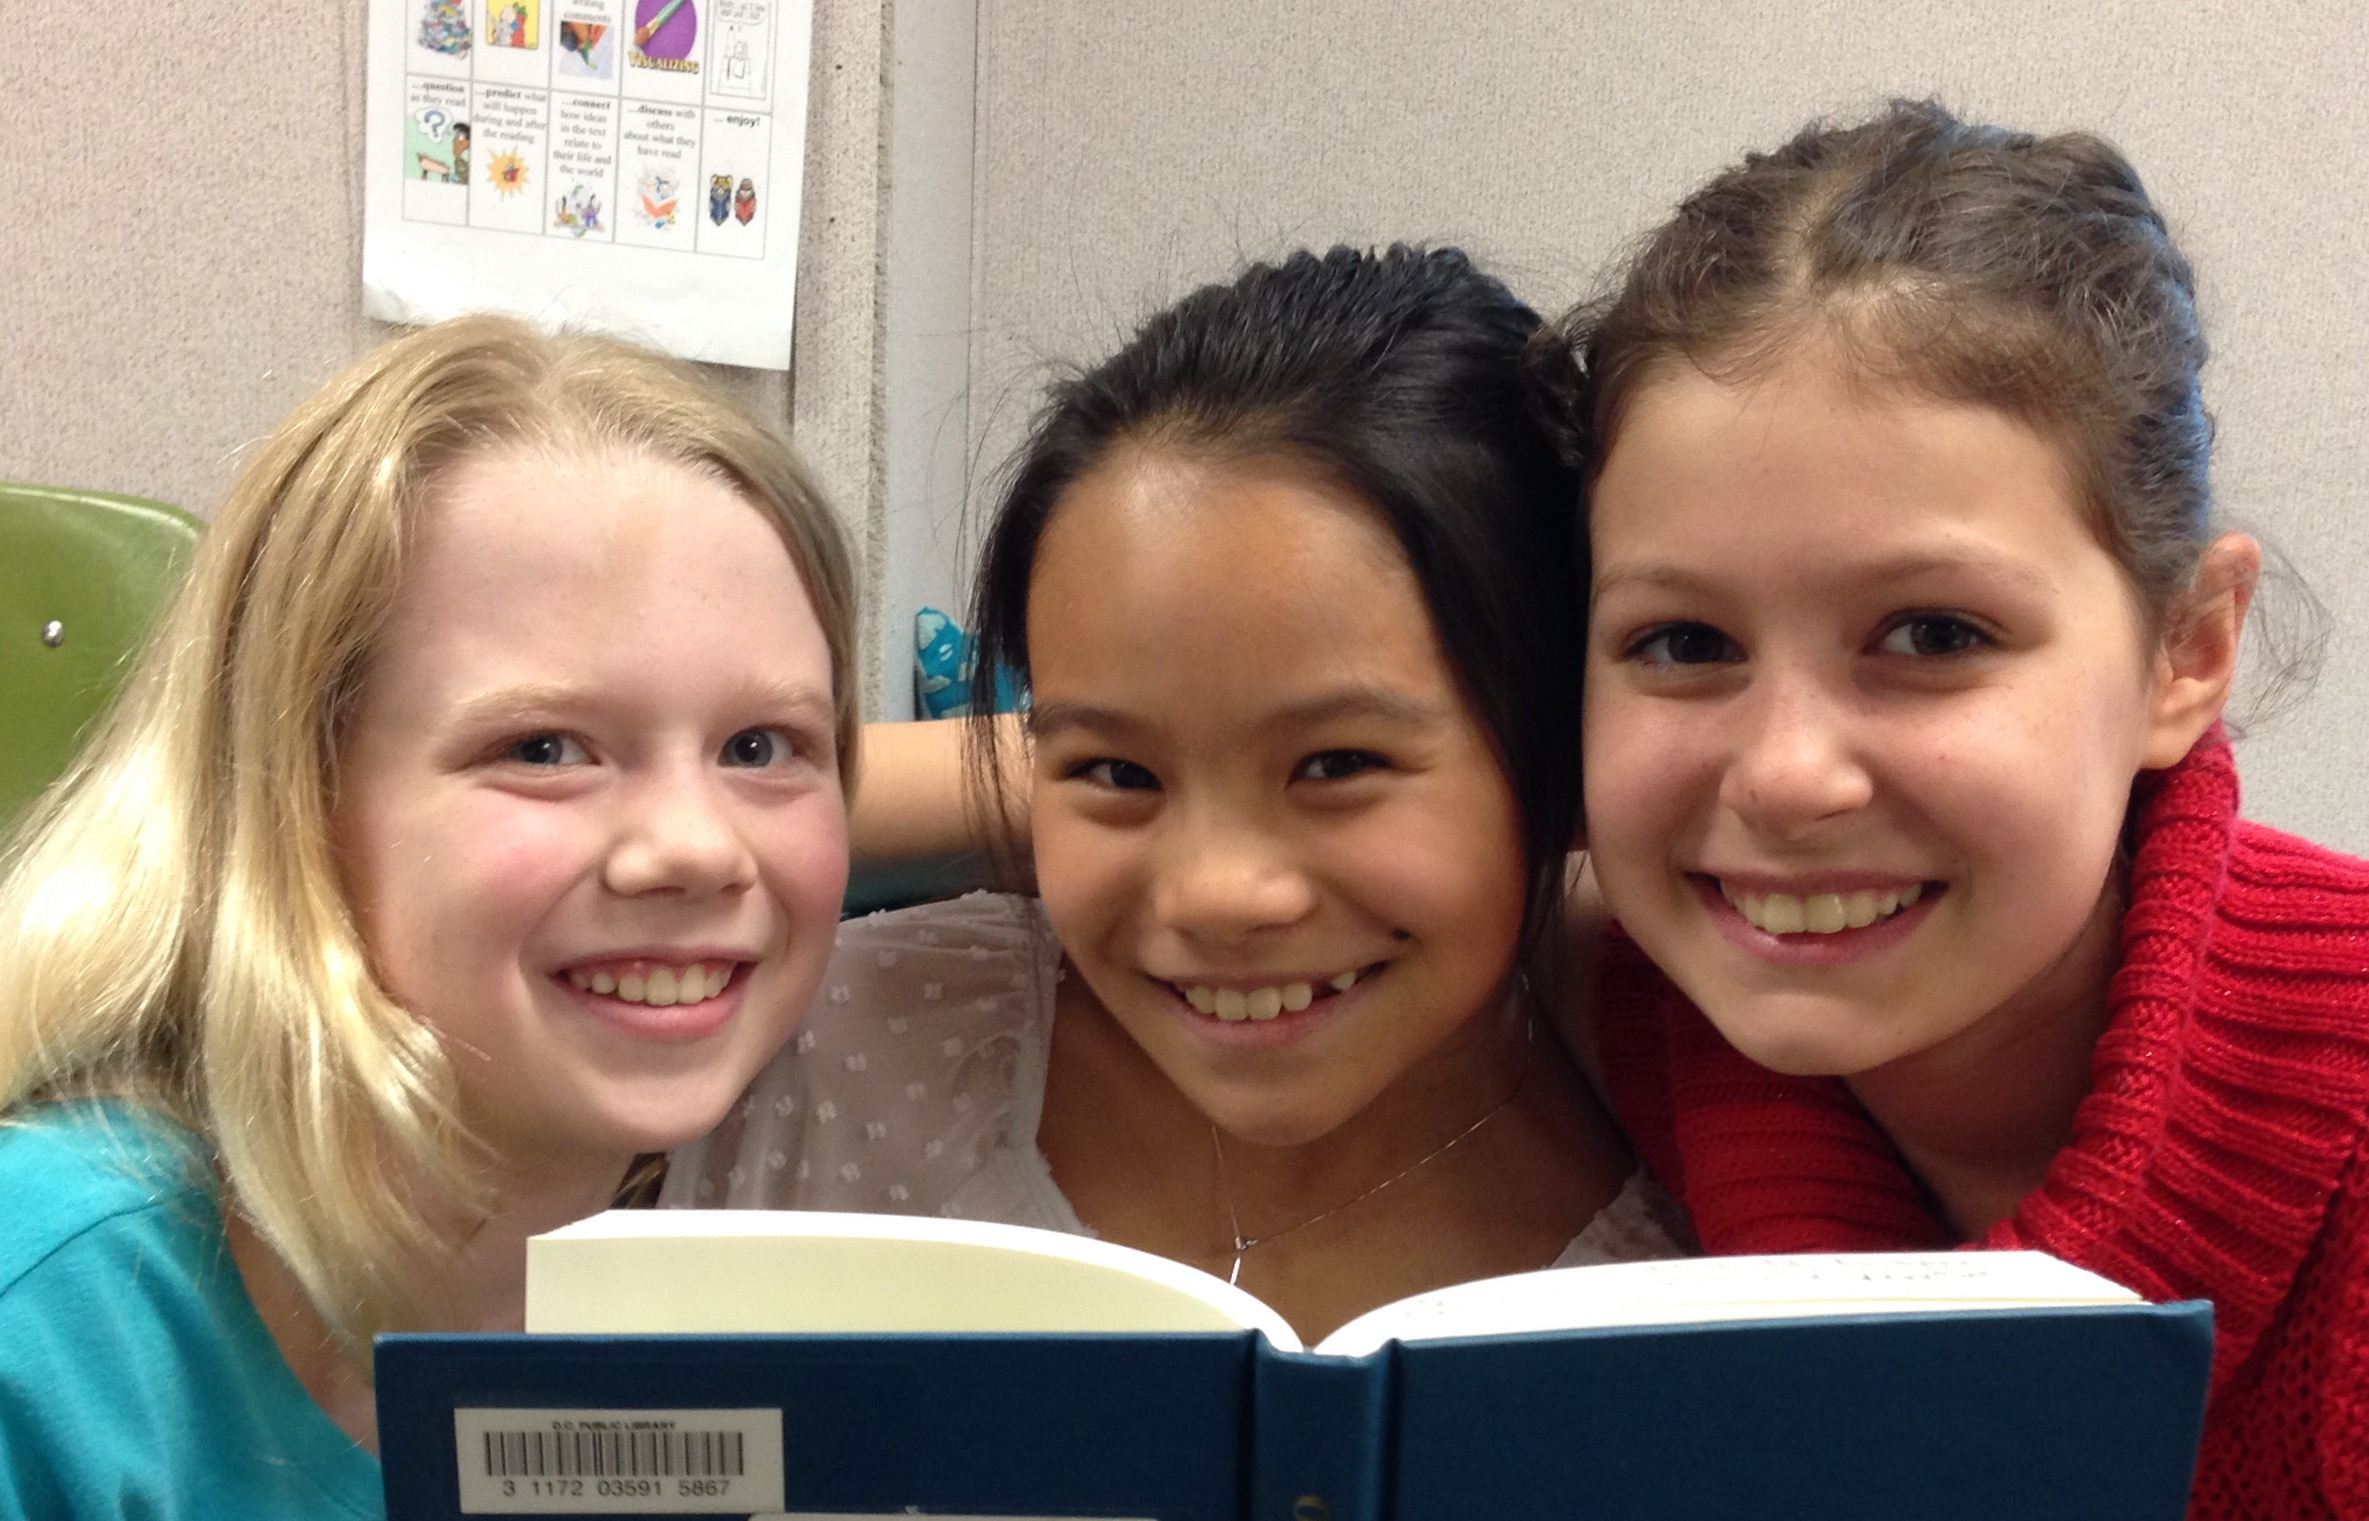 Ellie, Helena, and Leah from Lafayette Elementary School in Washington, DC